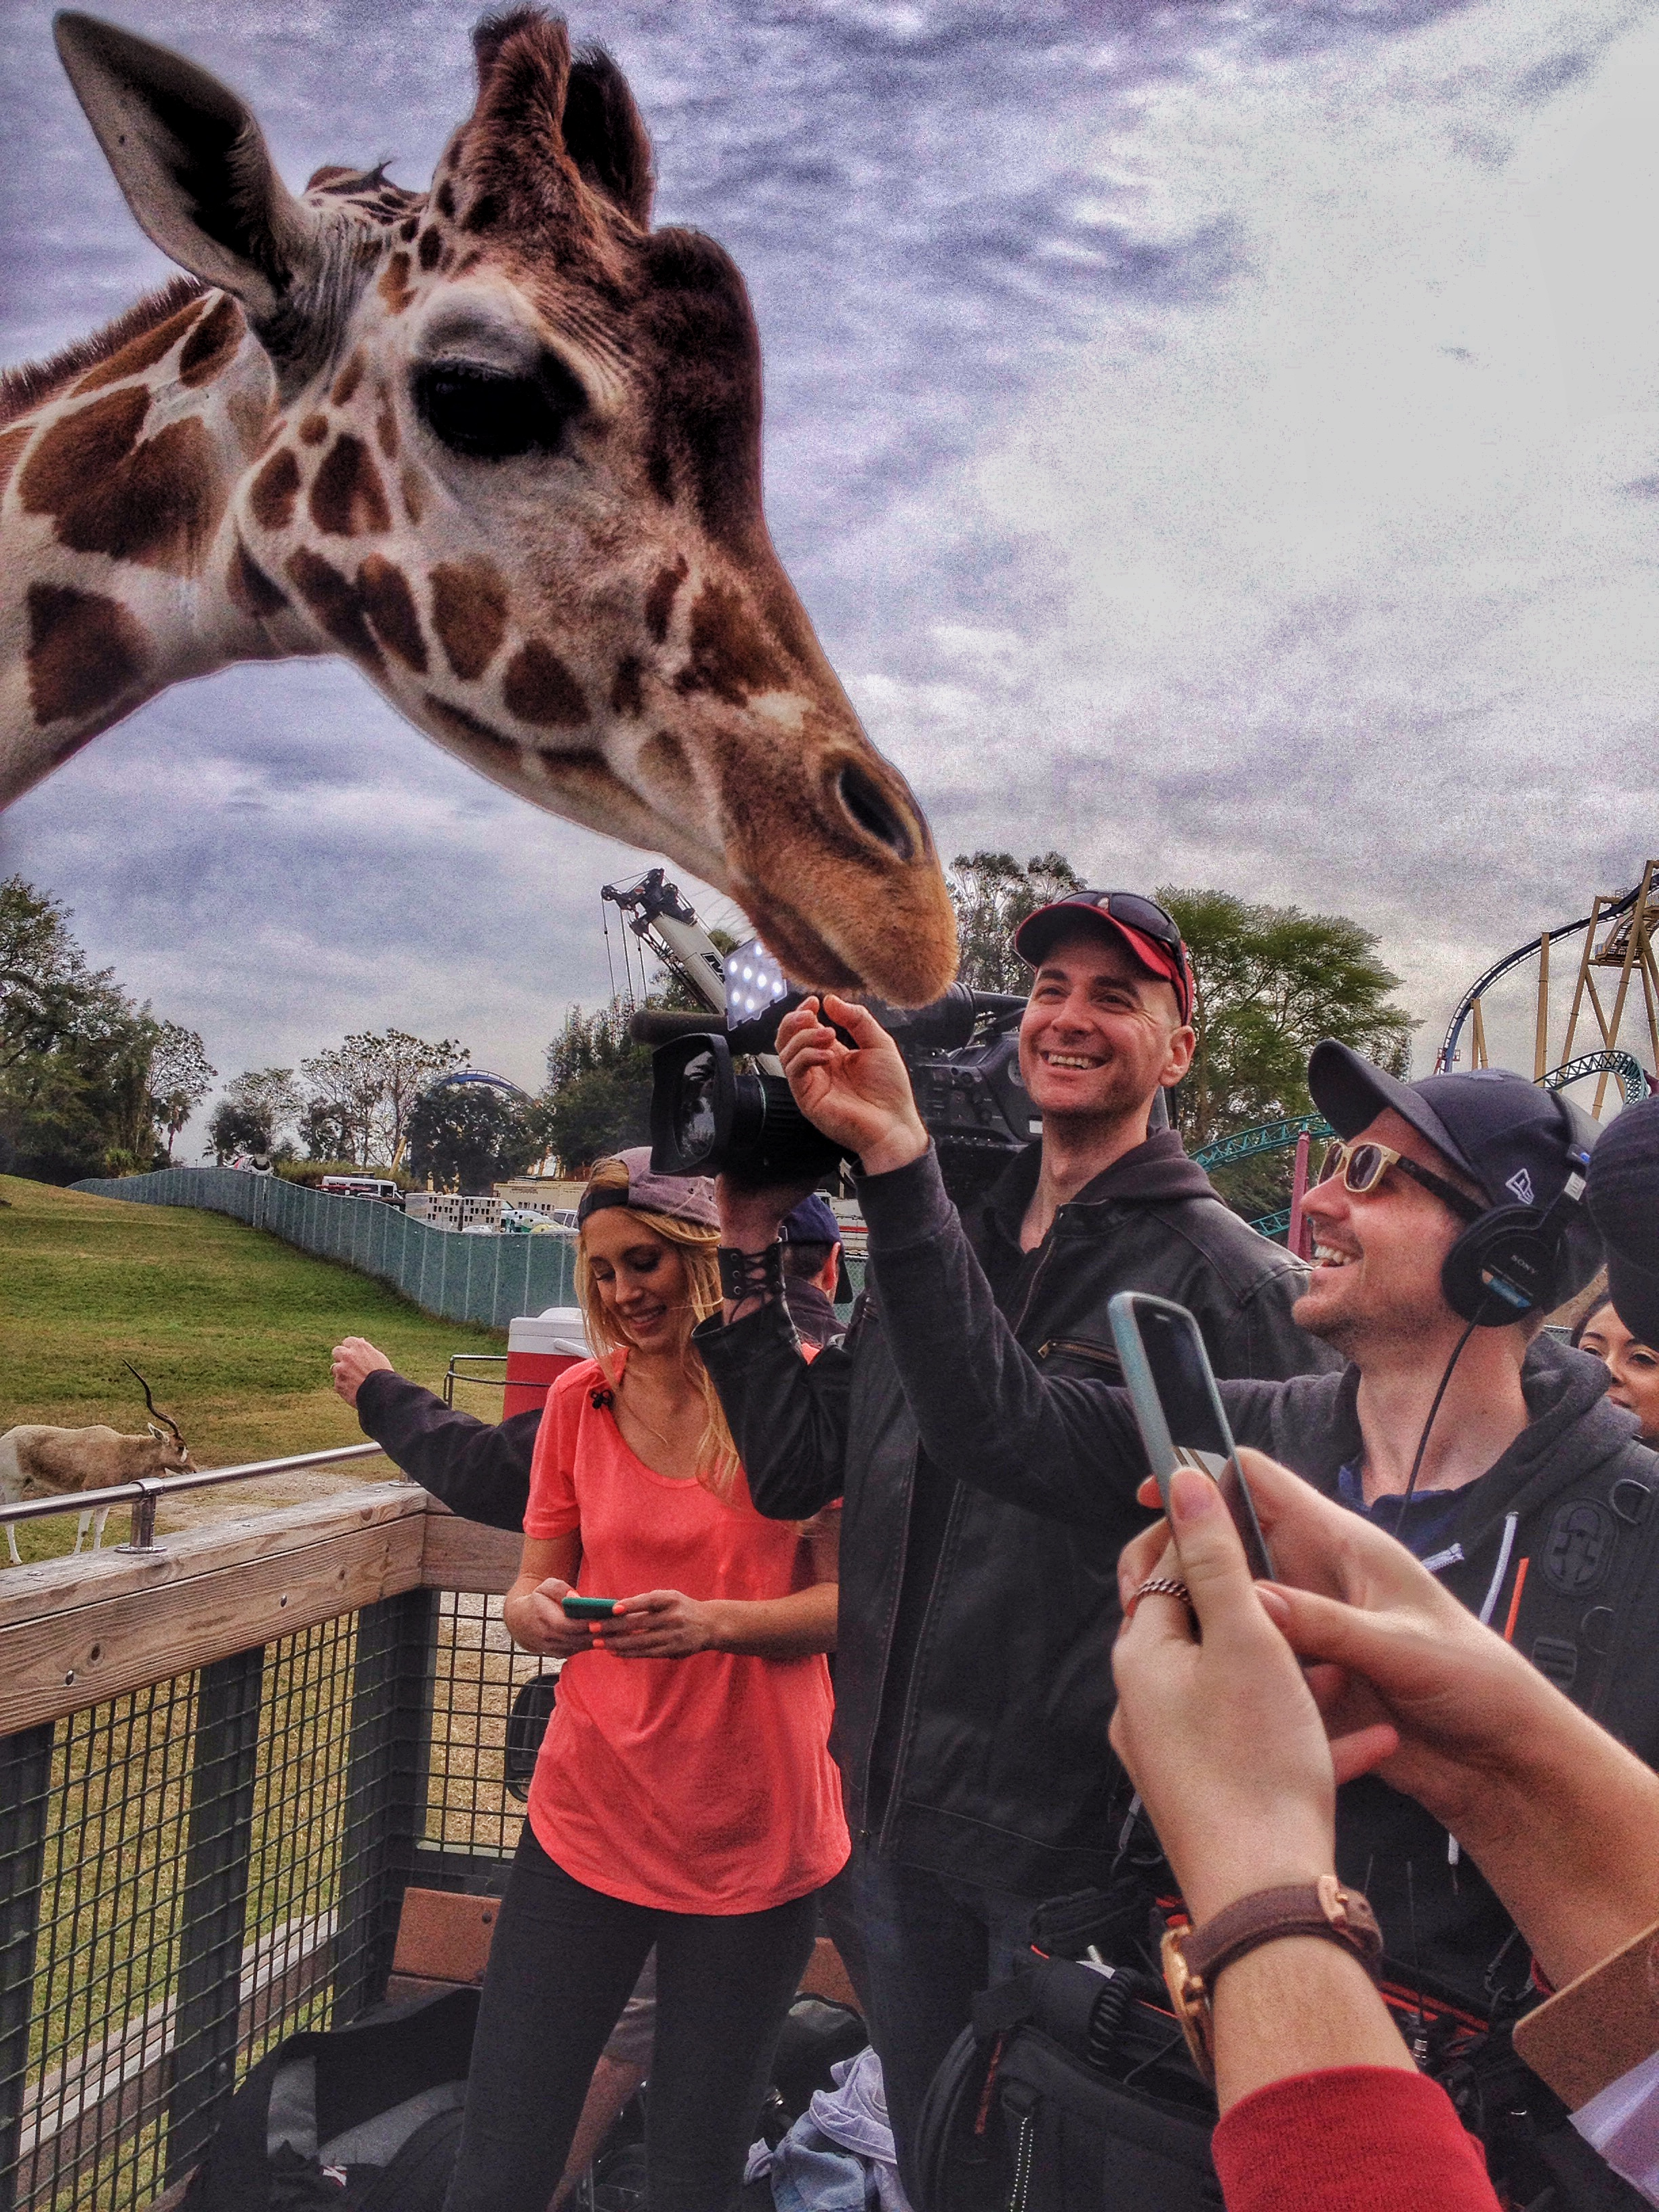 Filming a Giraffe at Busch Gardens